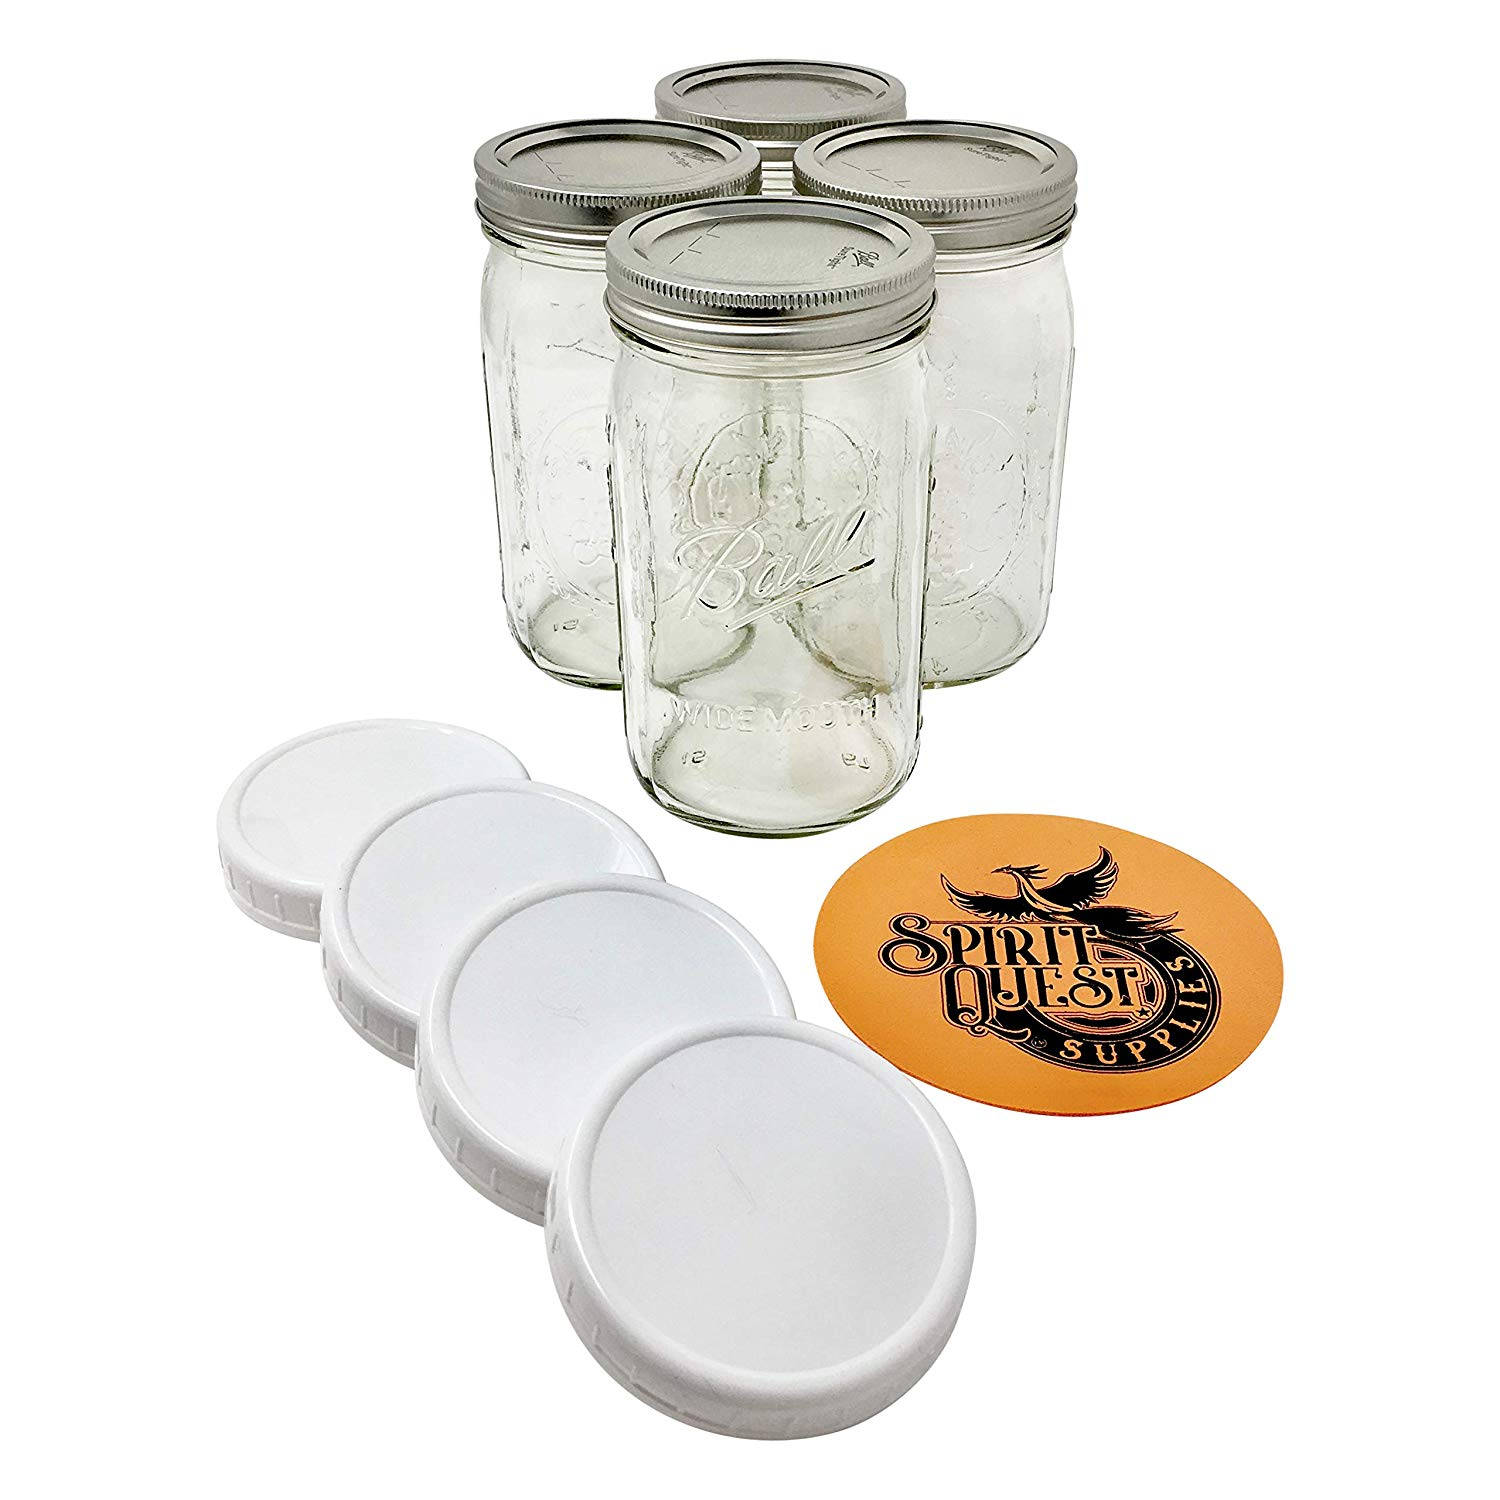 Ball Quart Mason Jars with Storage Lids and Jar Opener - Bundle Pack of 4 32 oz Wide Mouth Jars, 4 Storage Caps, and 1 Spirit Quest Supplies Large Jar Opener